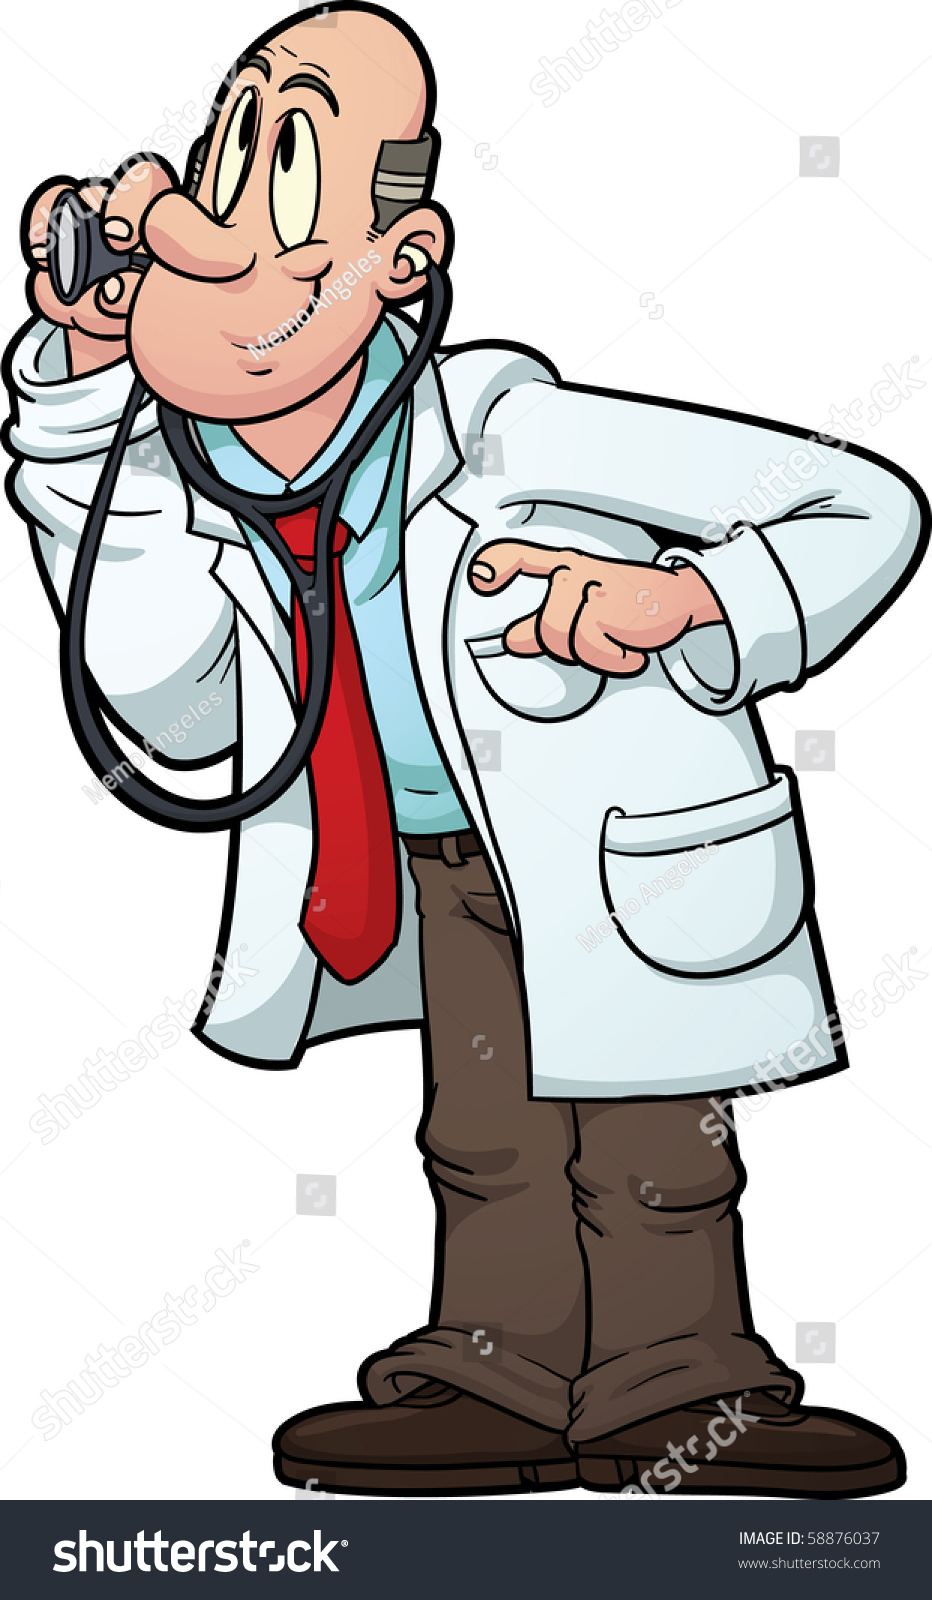 1091088 Royalty Free Tied Up Clipart Illustration additionally Stock Vector Cartoon Doctor Using Stethoscope Vector Image With Simple Gradients furthermore Tape on mouth in addition Over The Bridge Clipart 27488 besides 667159. on duct tape mouth cartoon